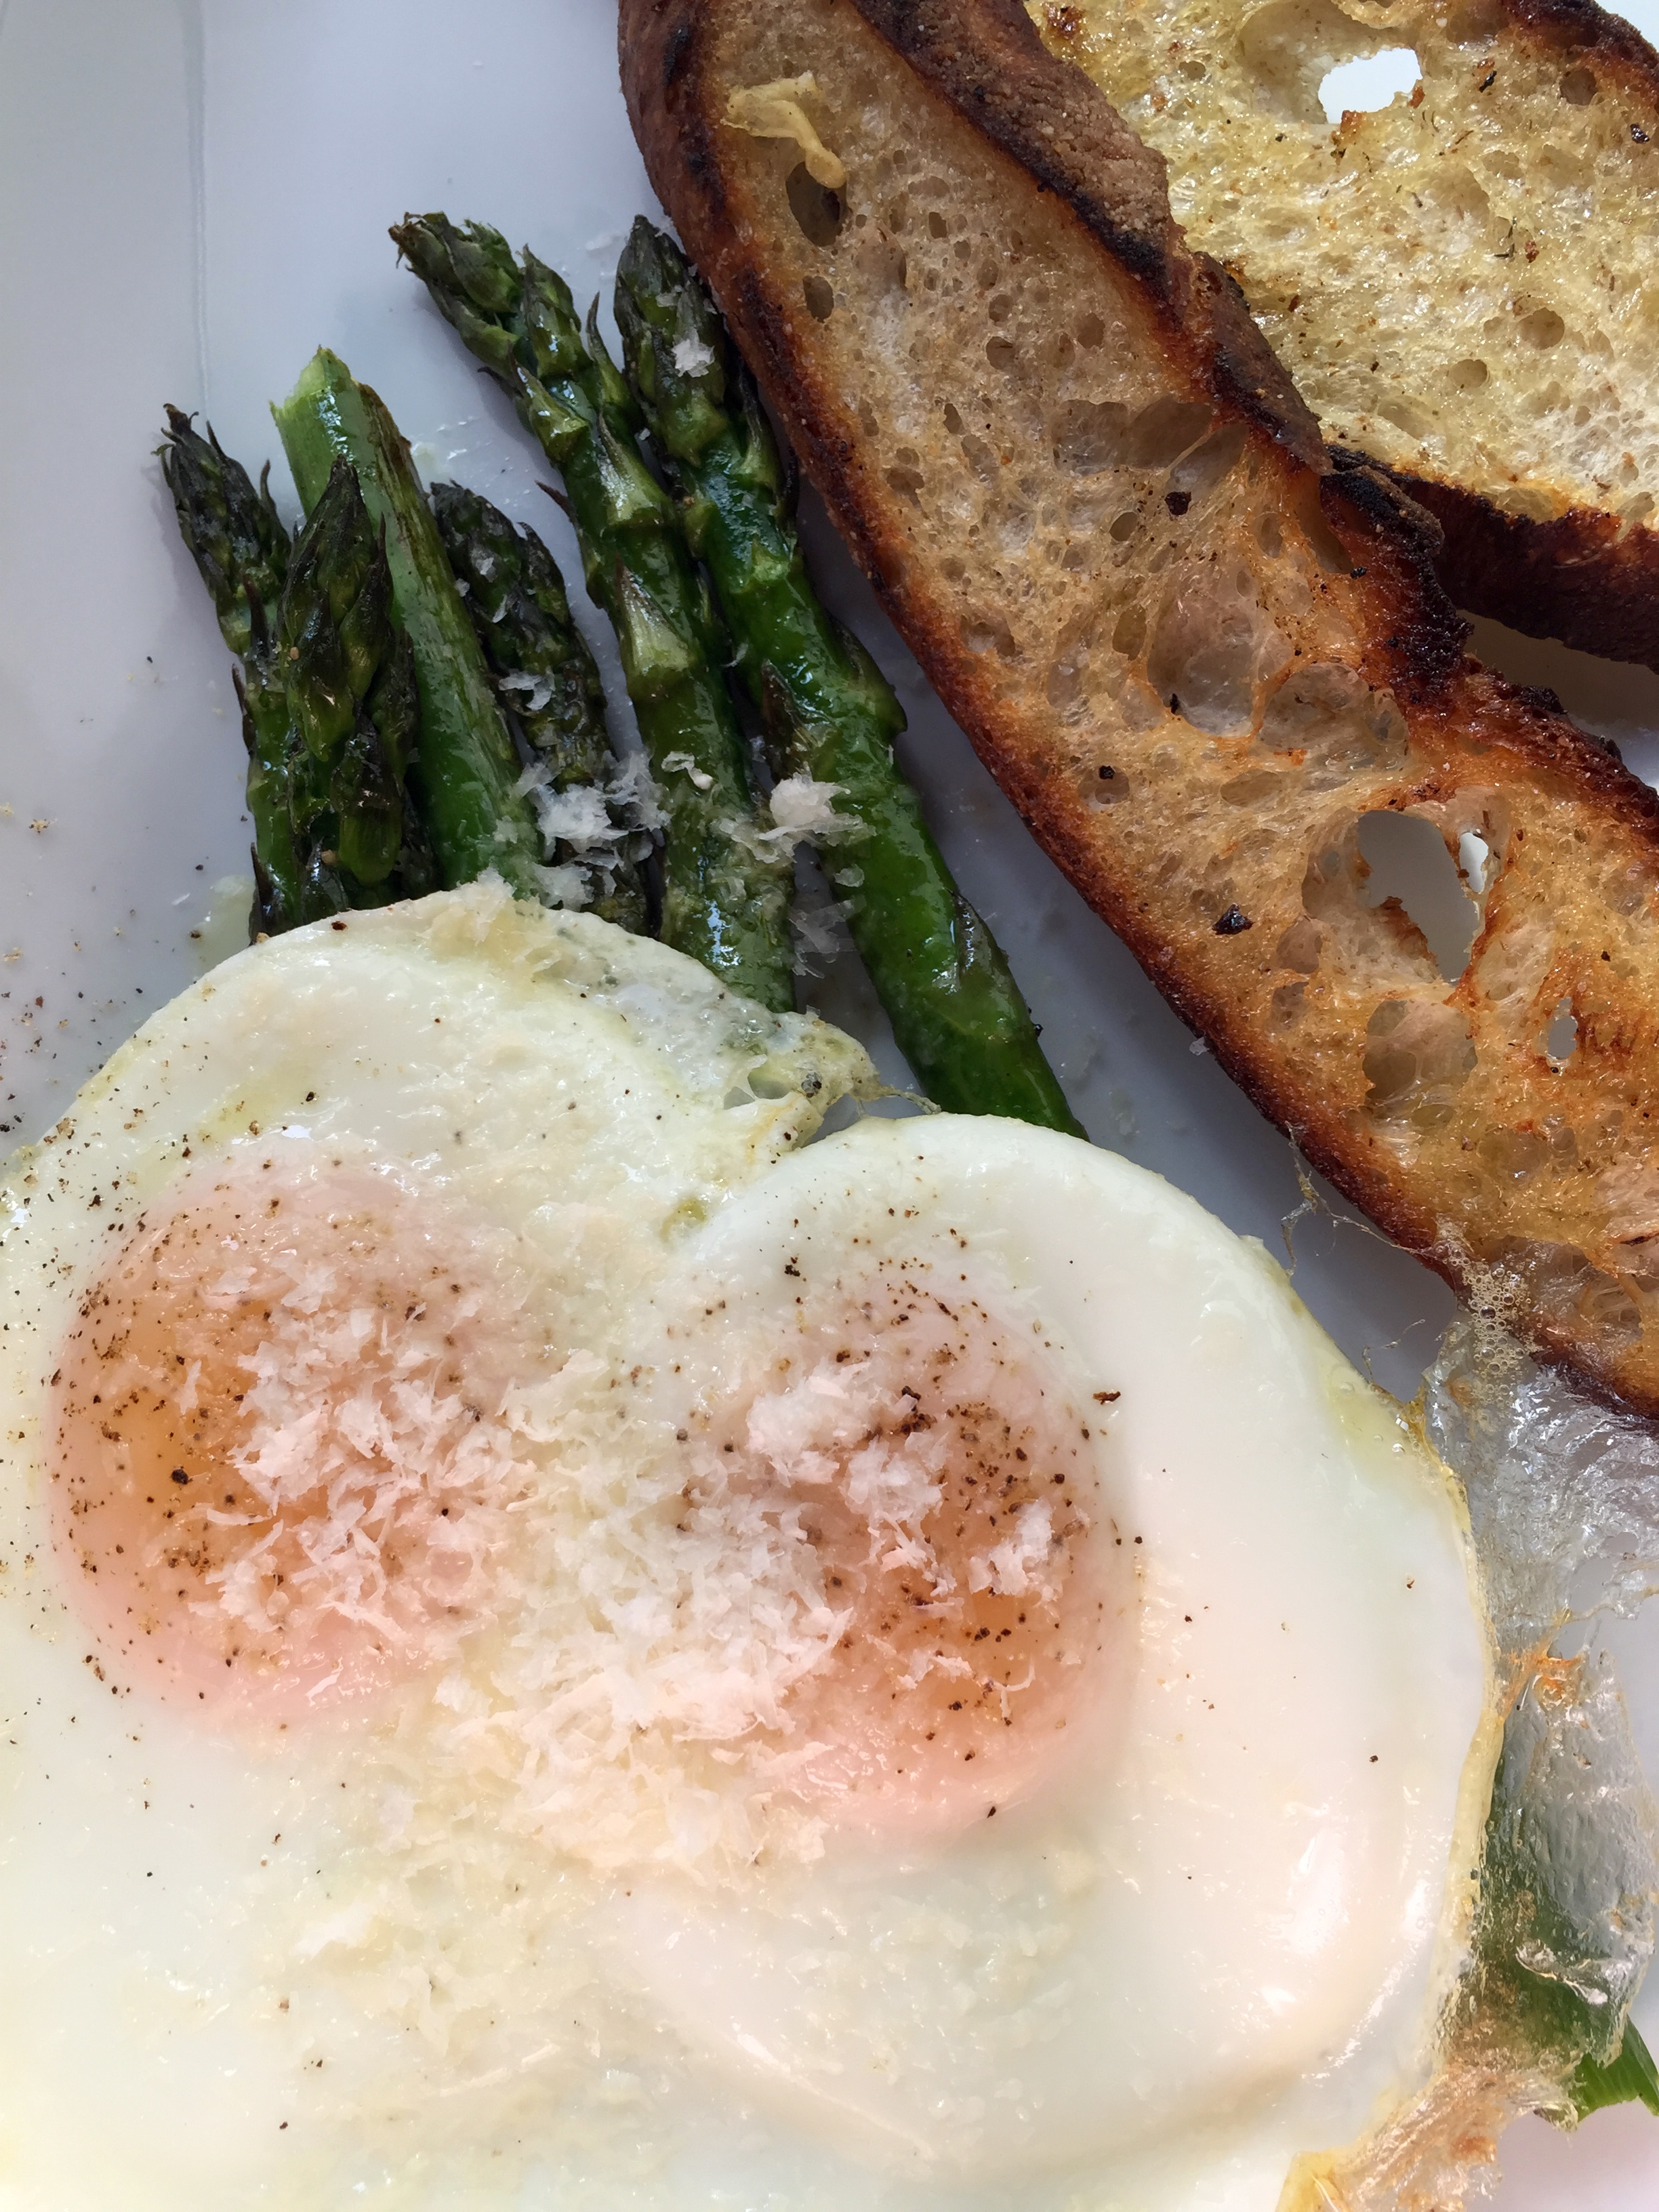 WOOD-FIRED ASPARAGUS - sunny-side up eggs, parmesan, toasted baguette, and lemon.